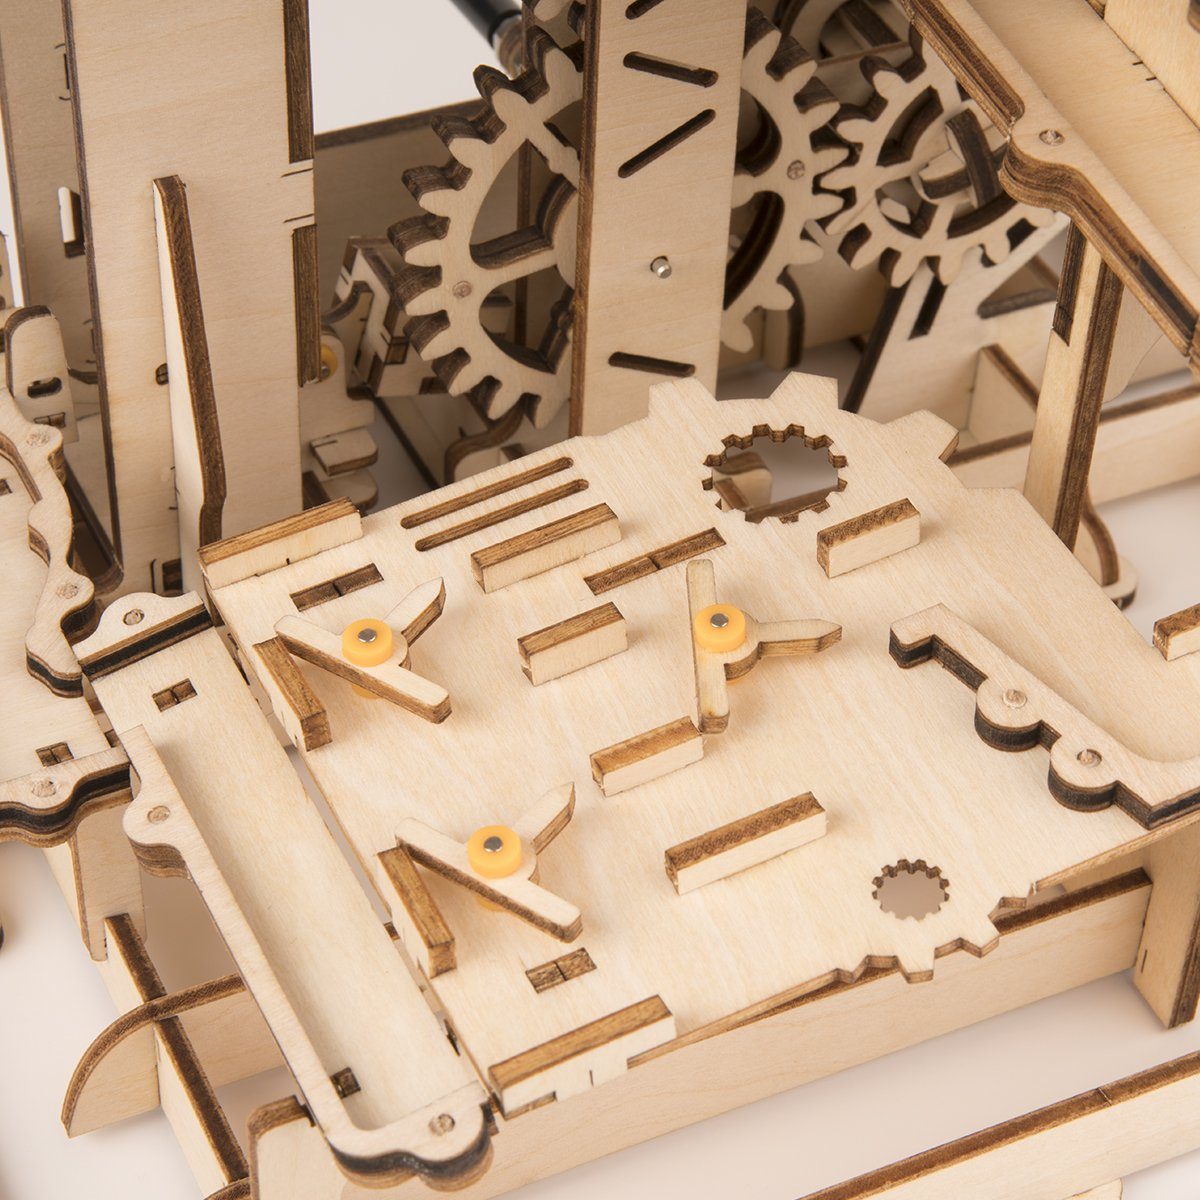 ROBOTIME 3D Wooden Puzzle Brain Teaser Toys Mechanical Gears Kit Unique Craft Kits Tower Coaster with Steel Balls Executive Desk Toys Best Gifts for Adults and Kids by ROBOTIME (Image #4)